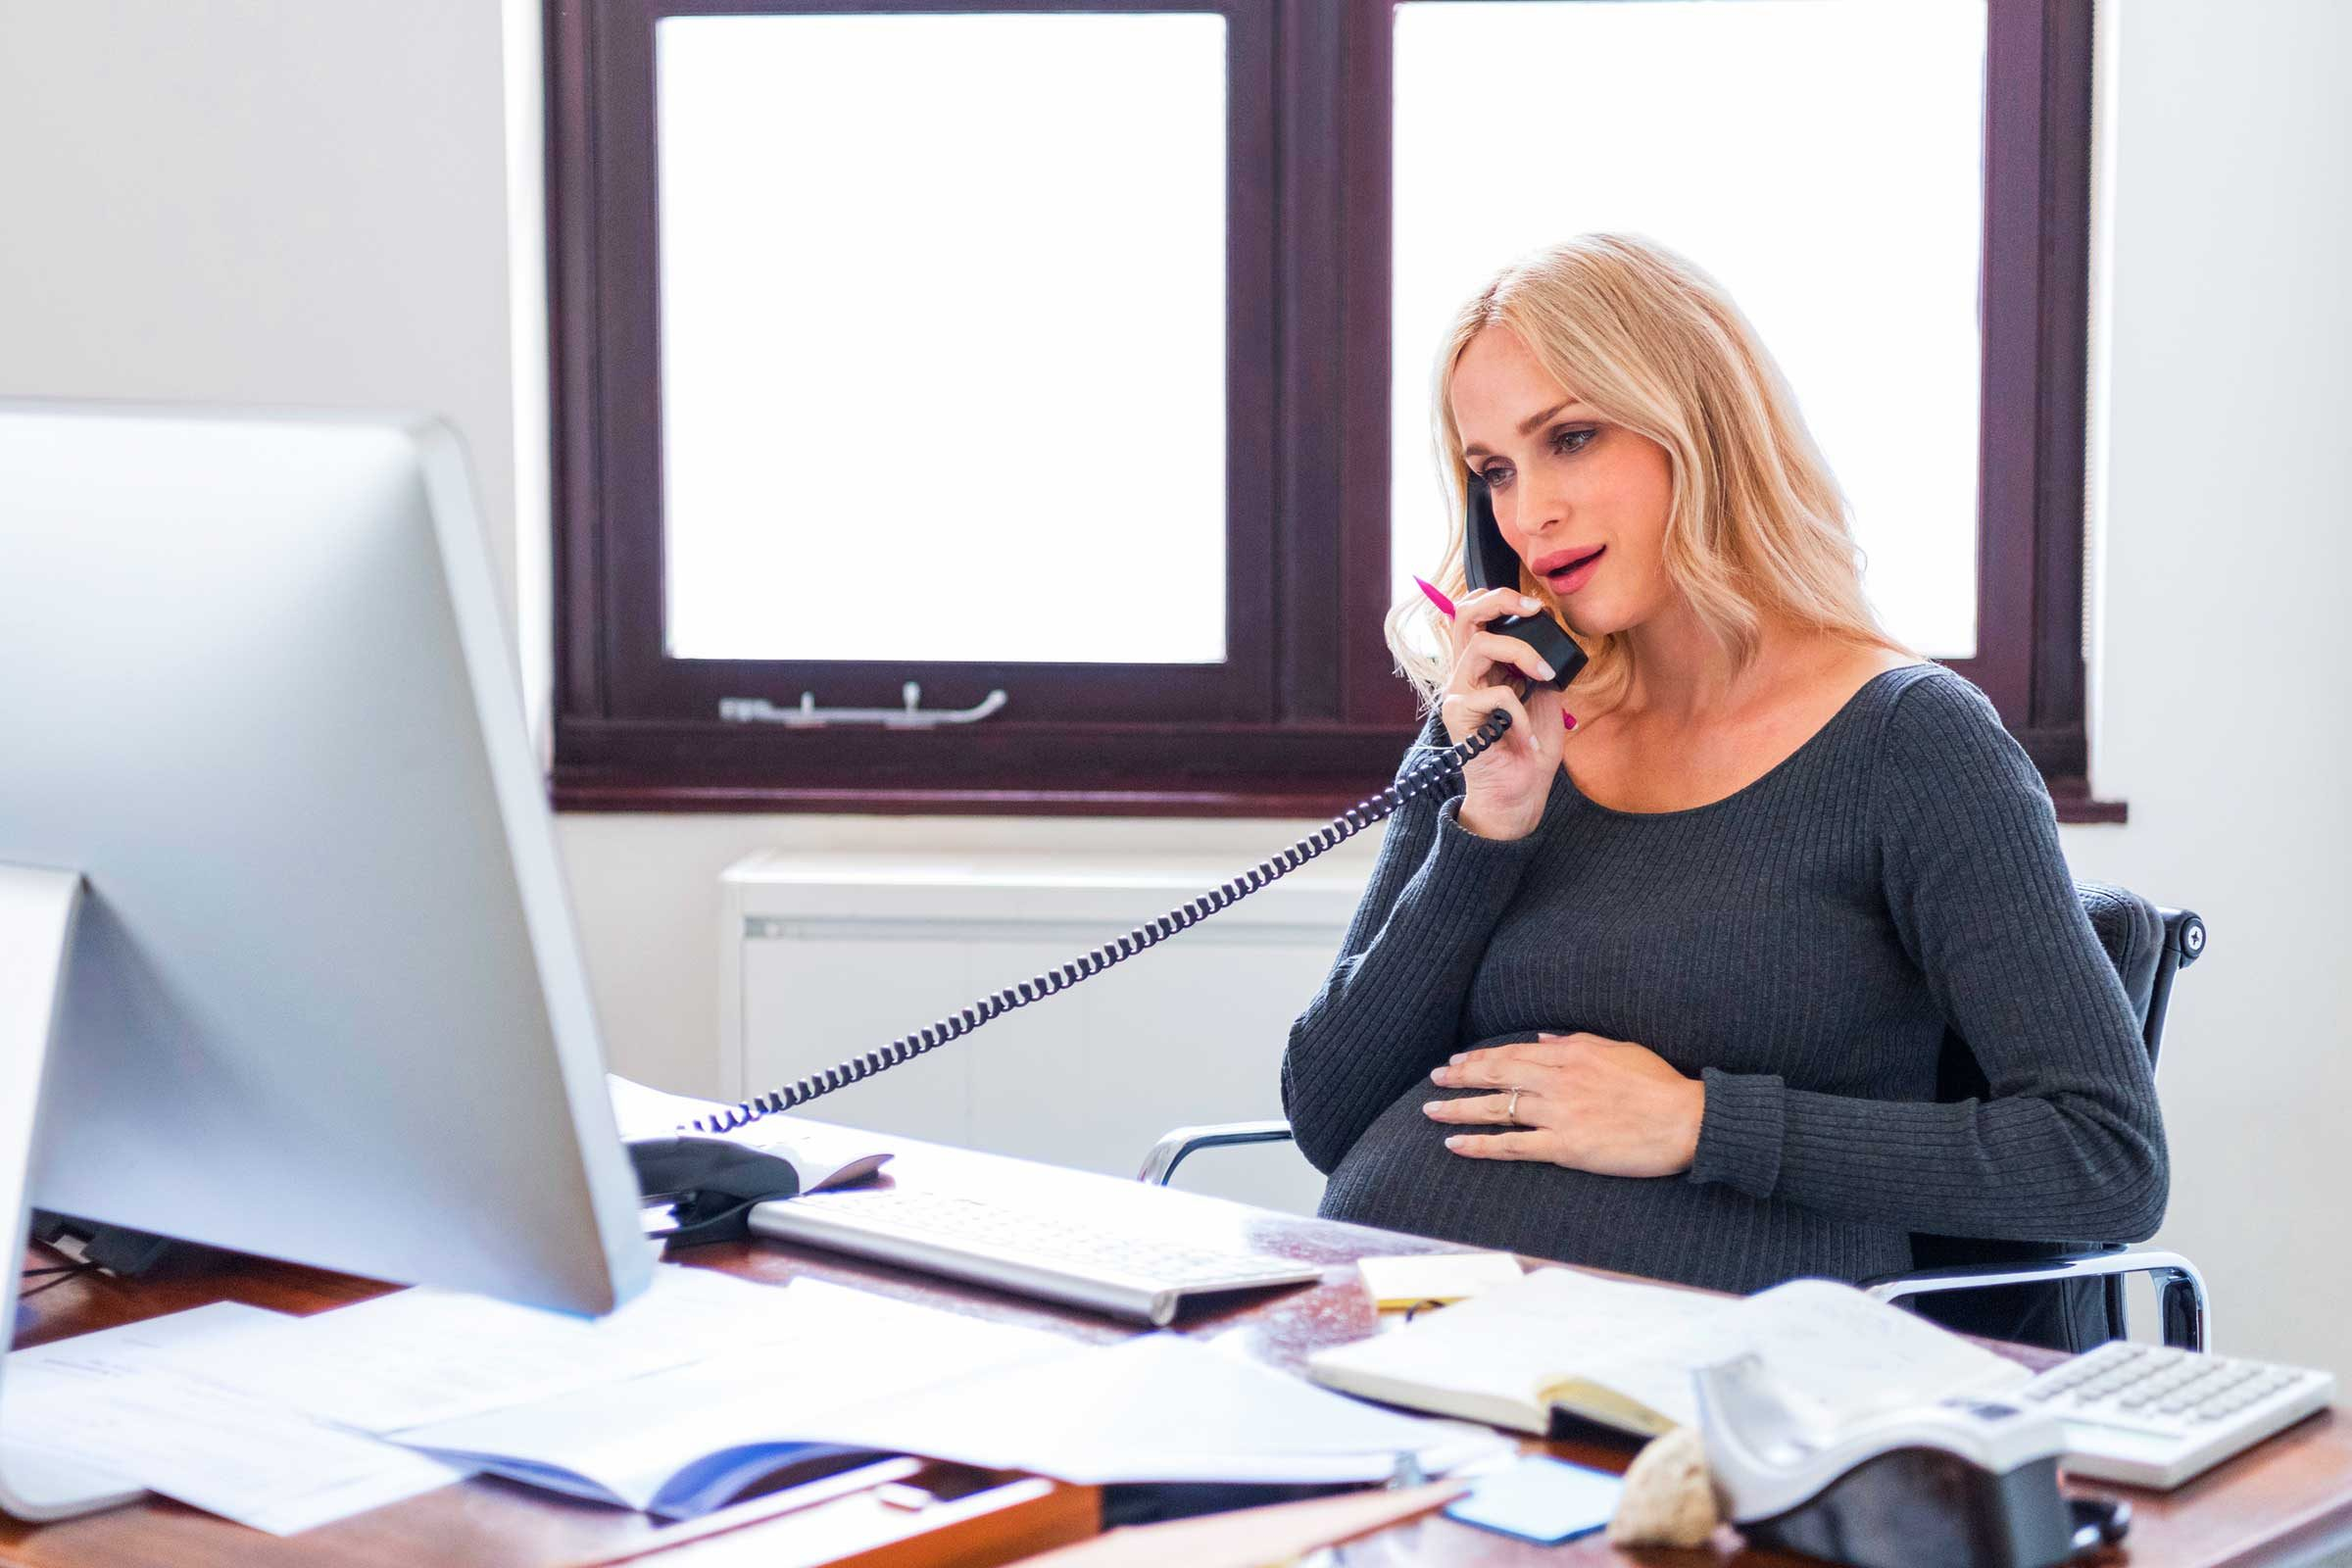 woman speaking on the phone in an office